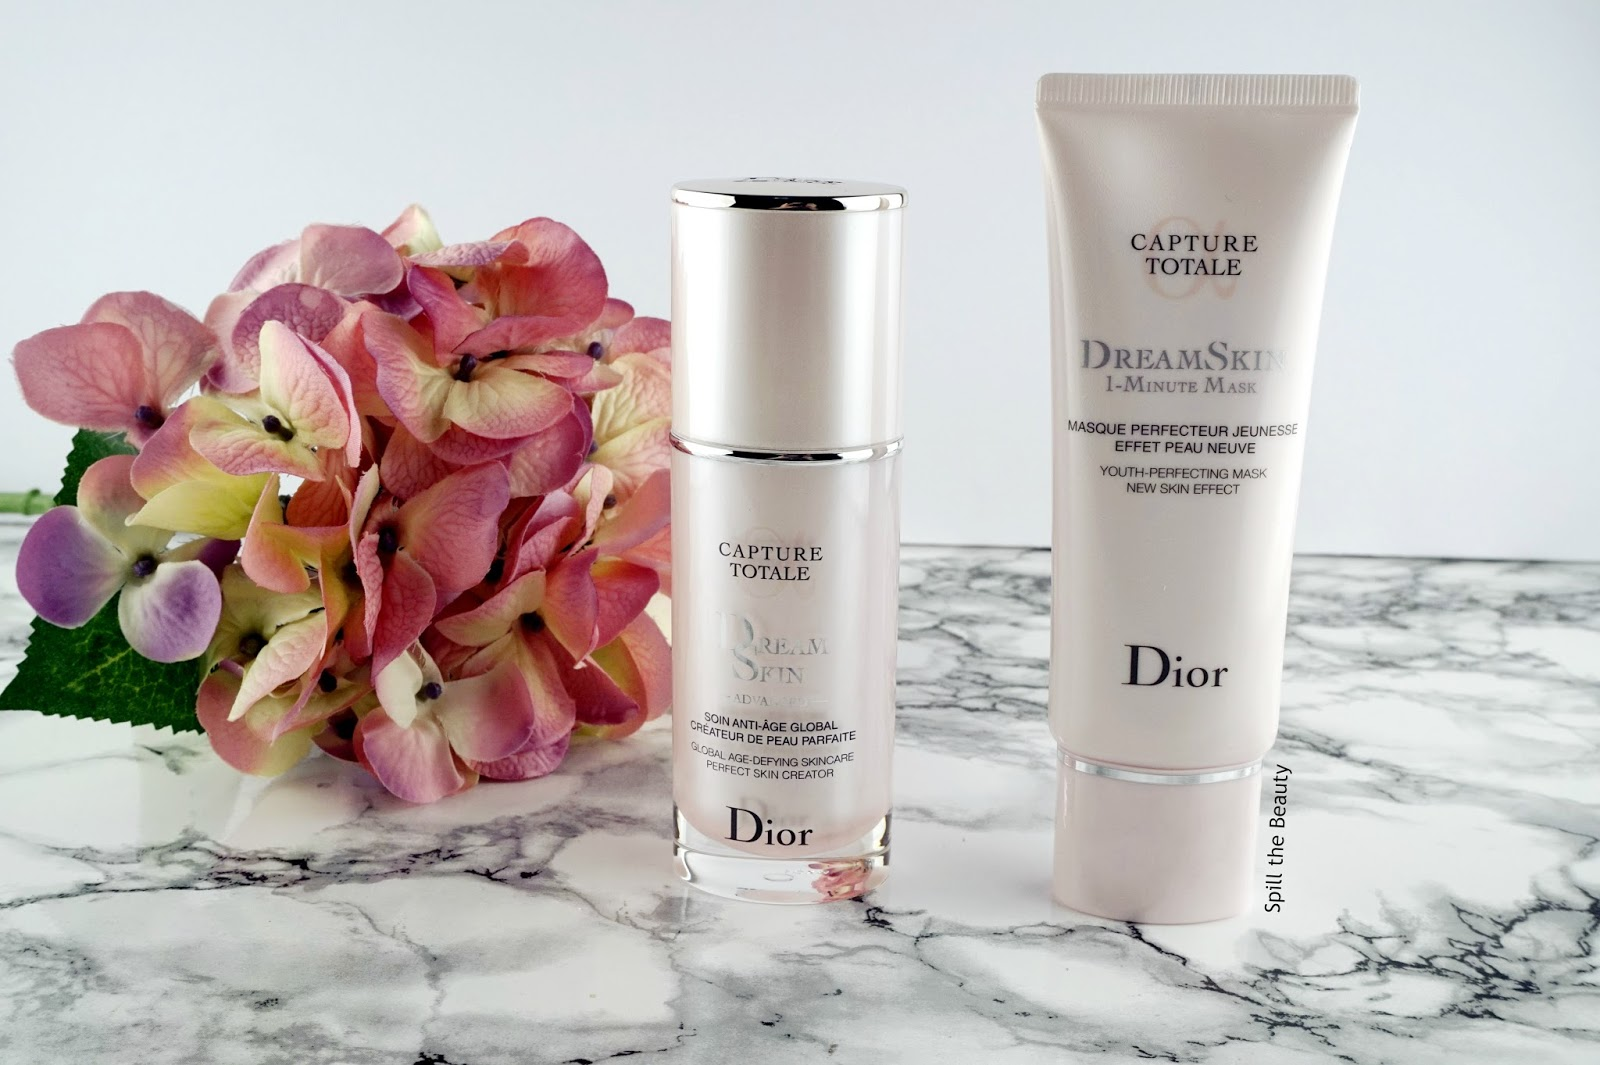 Dior DreamSkin Advanced & 1-Minute Mask - Information